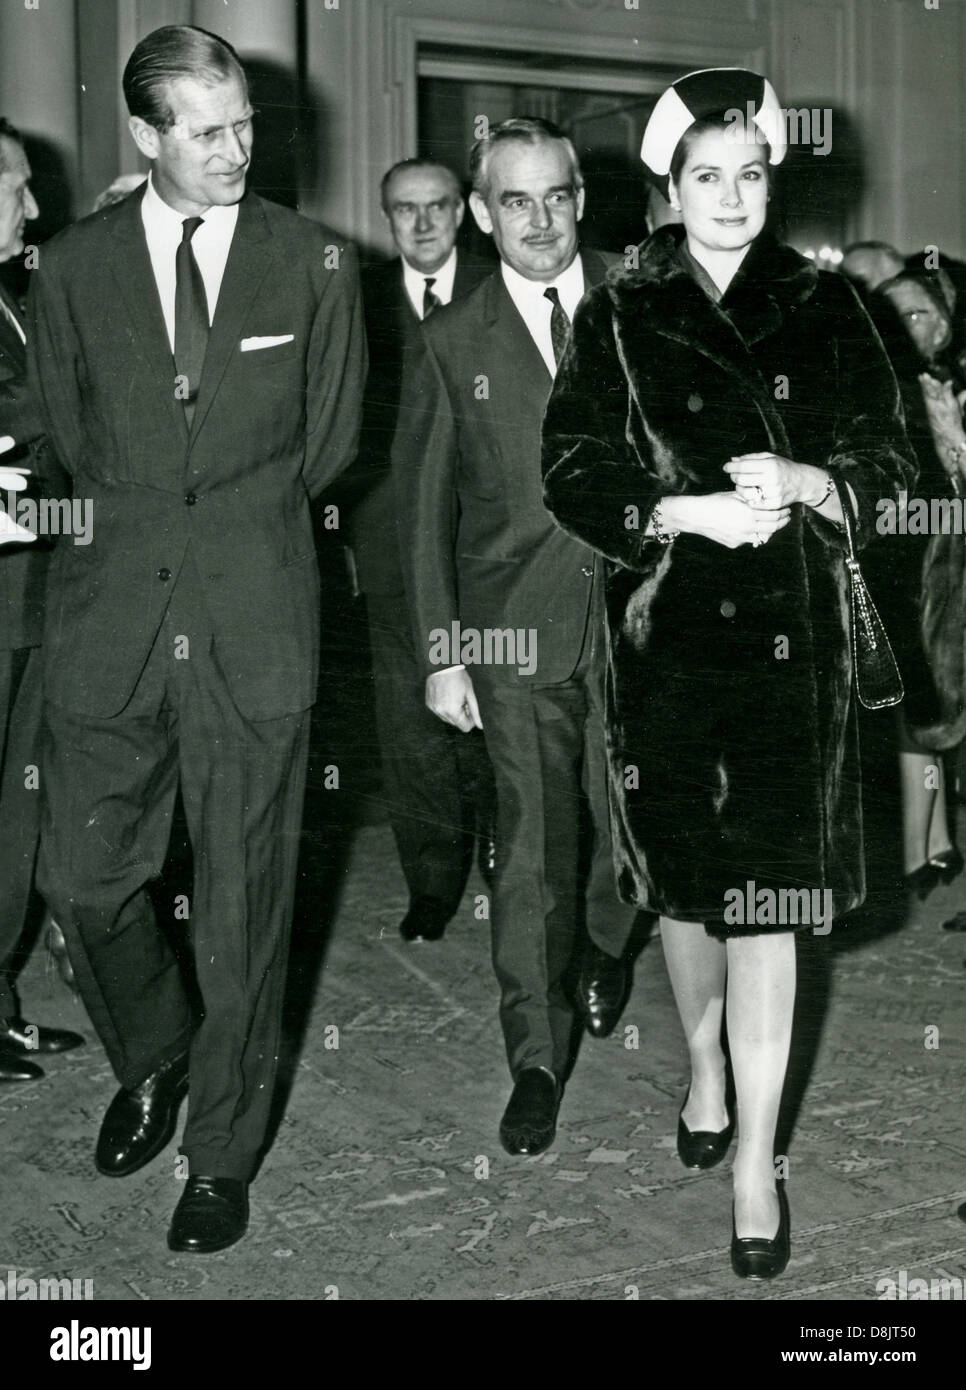 PRINCE PHILLIP at left with Prince Ranier and his wife Princess Grace about 1964 - Stock Image